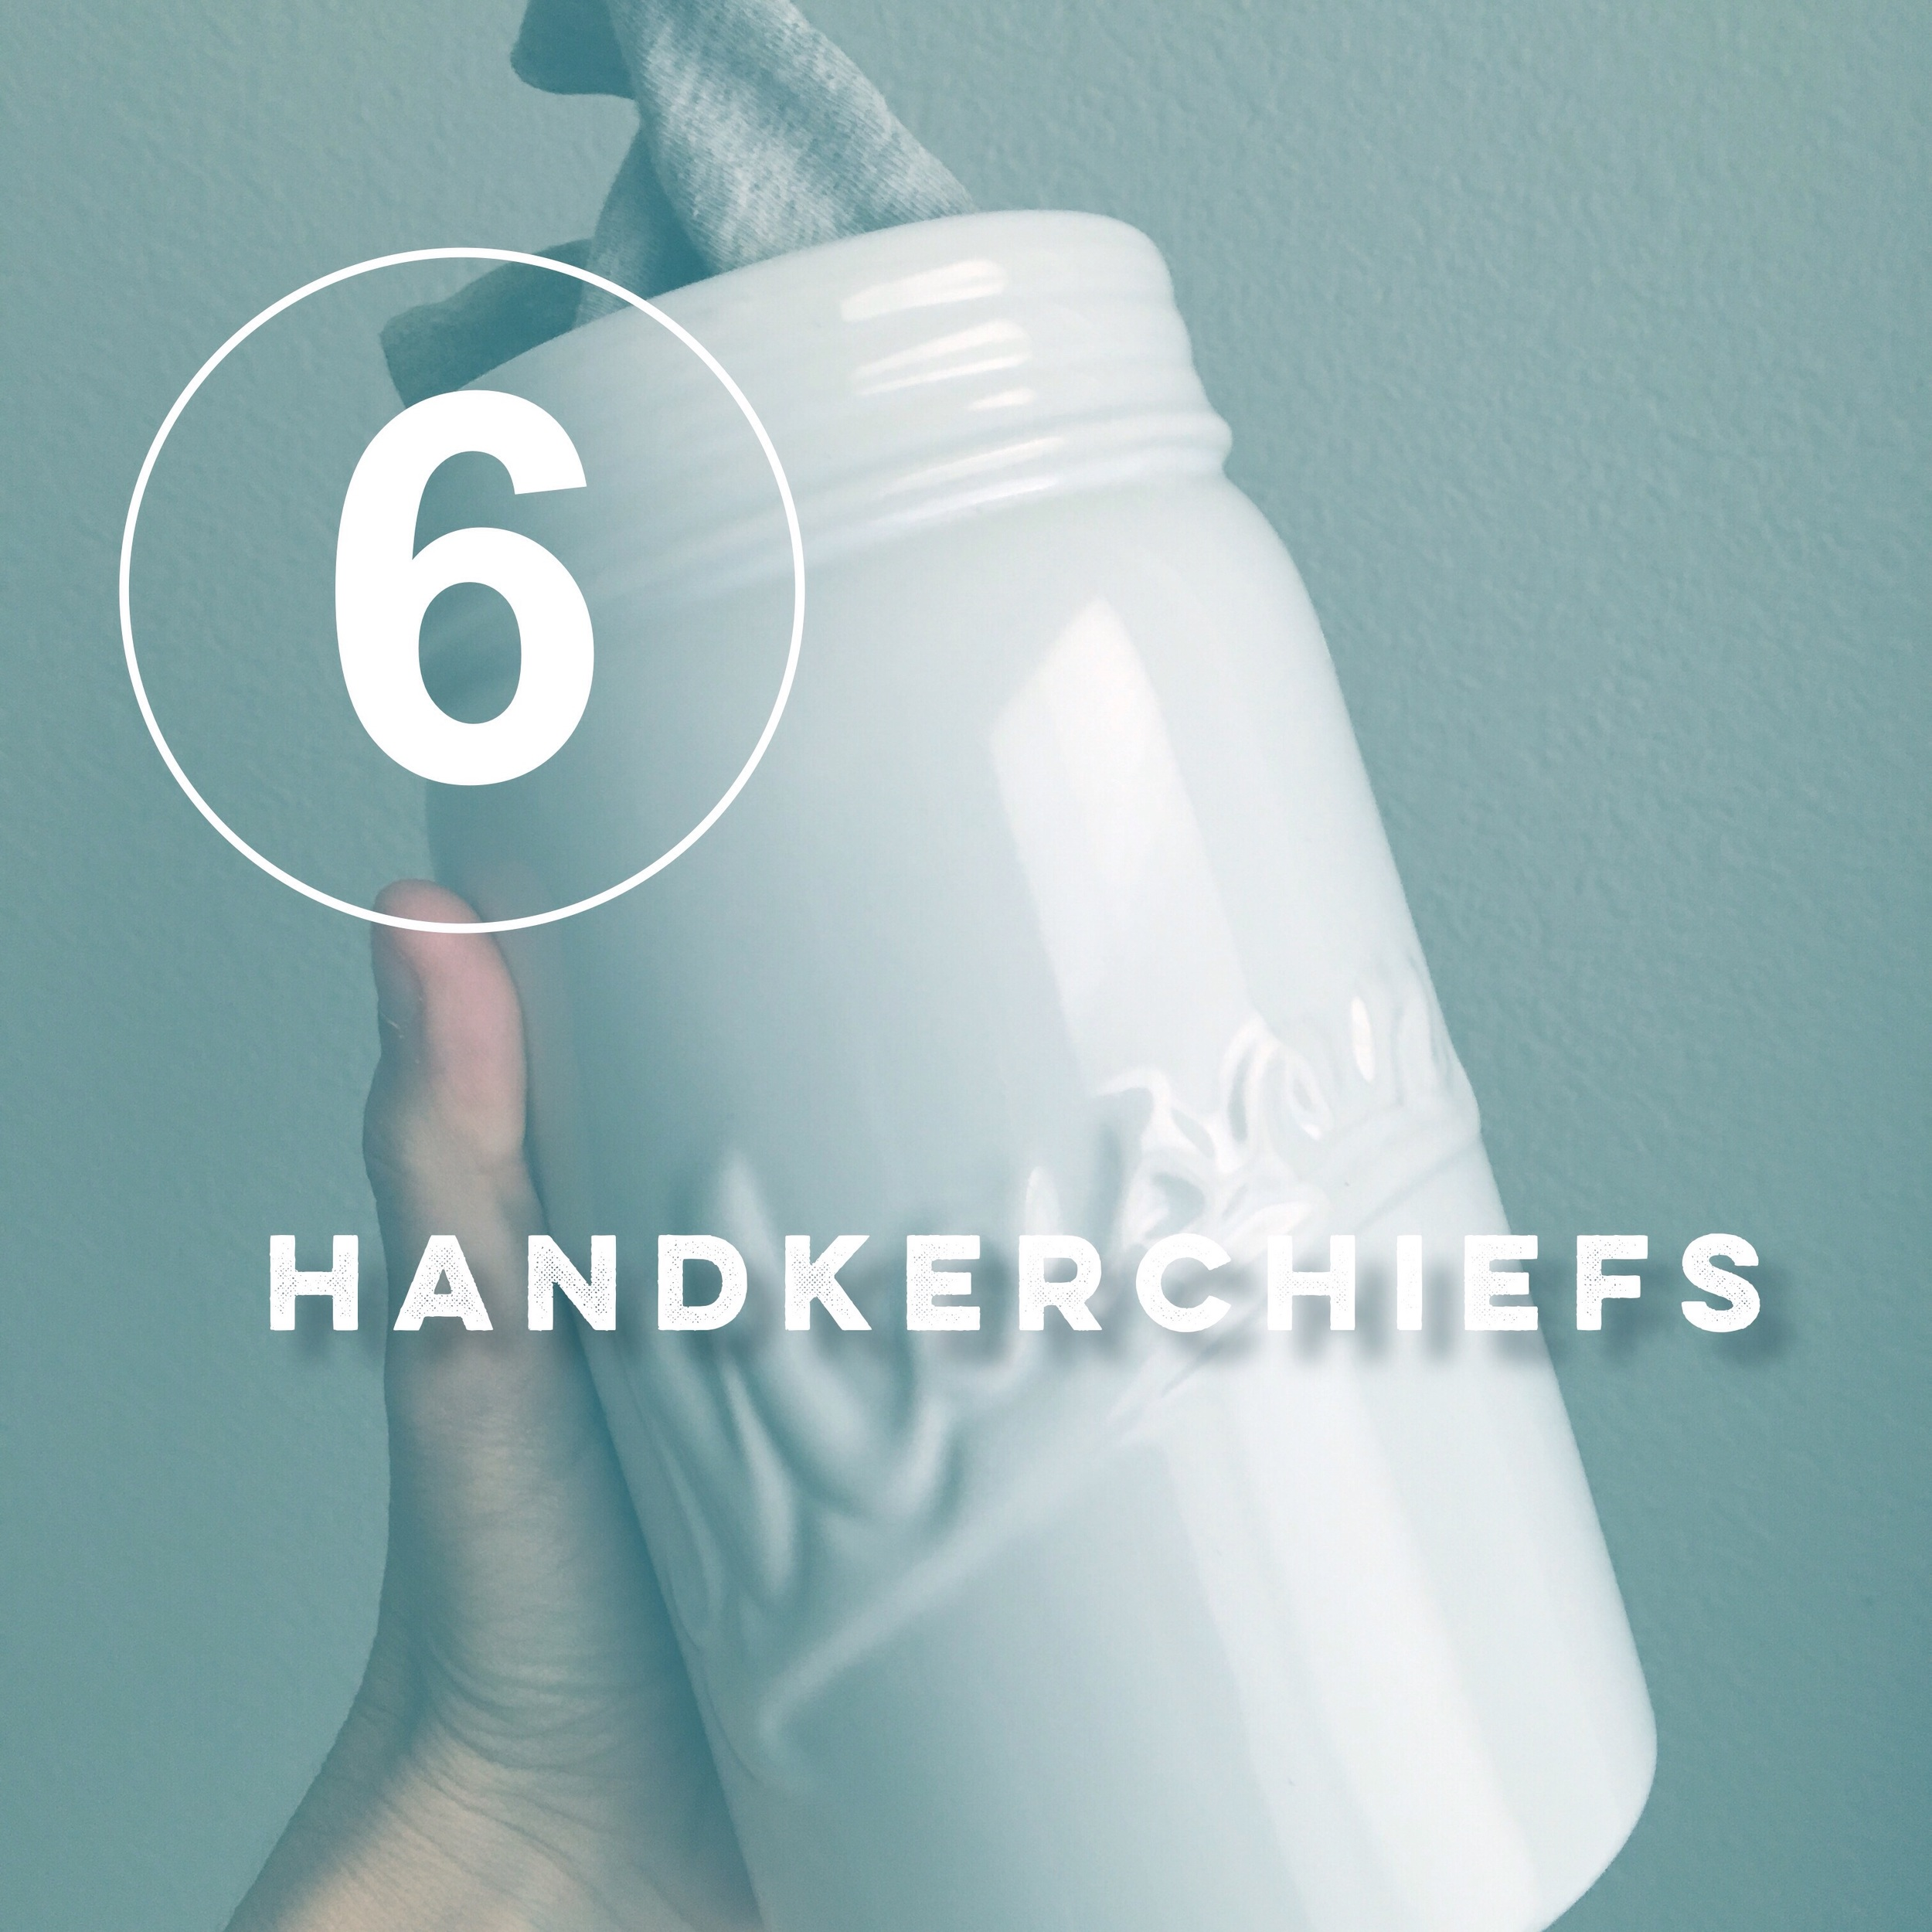 Day six of the zero waste challenge! Use a handkerchief and say goodbye to a chapped nose!